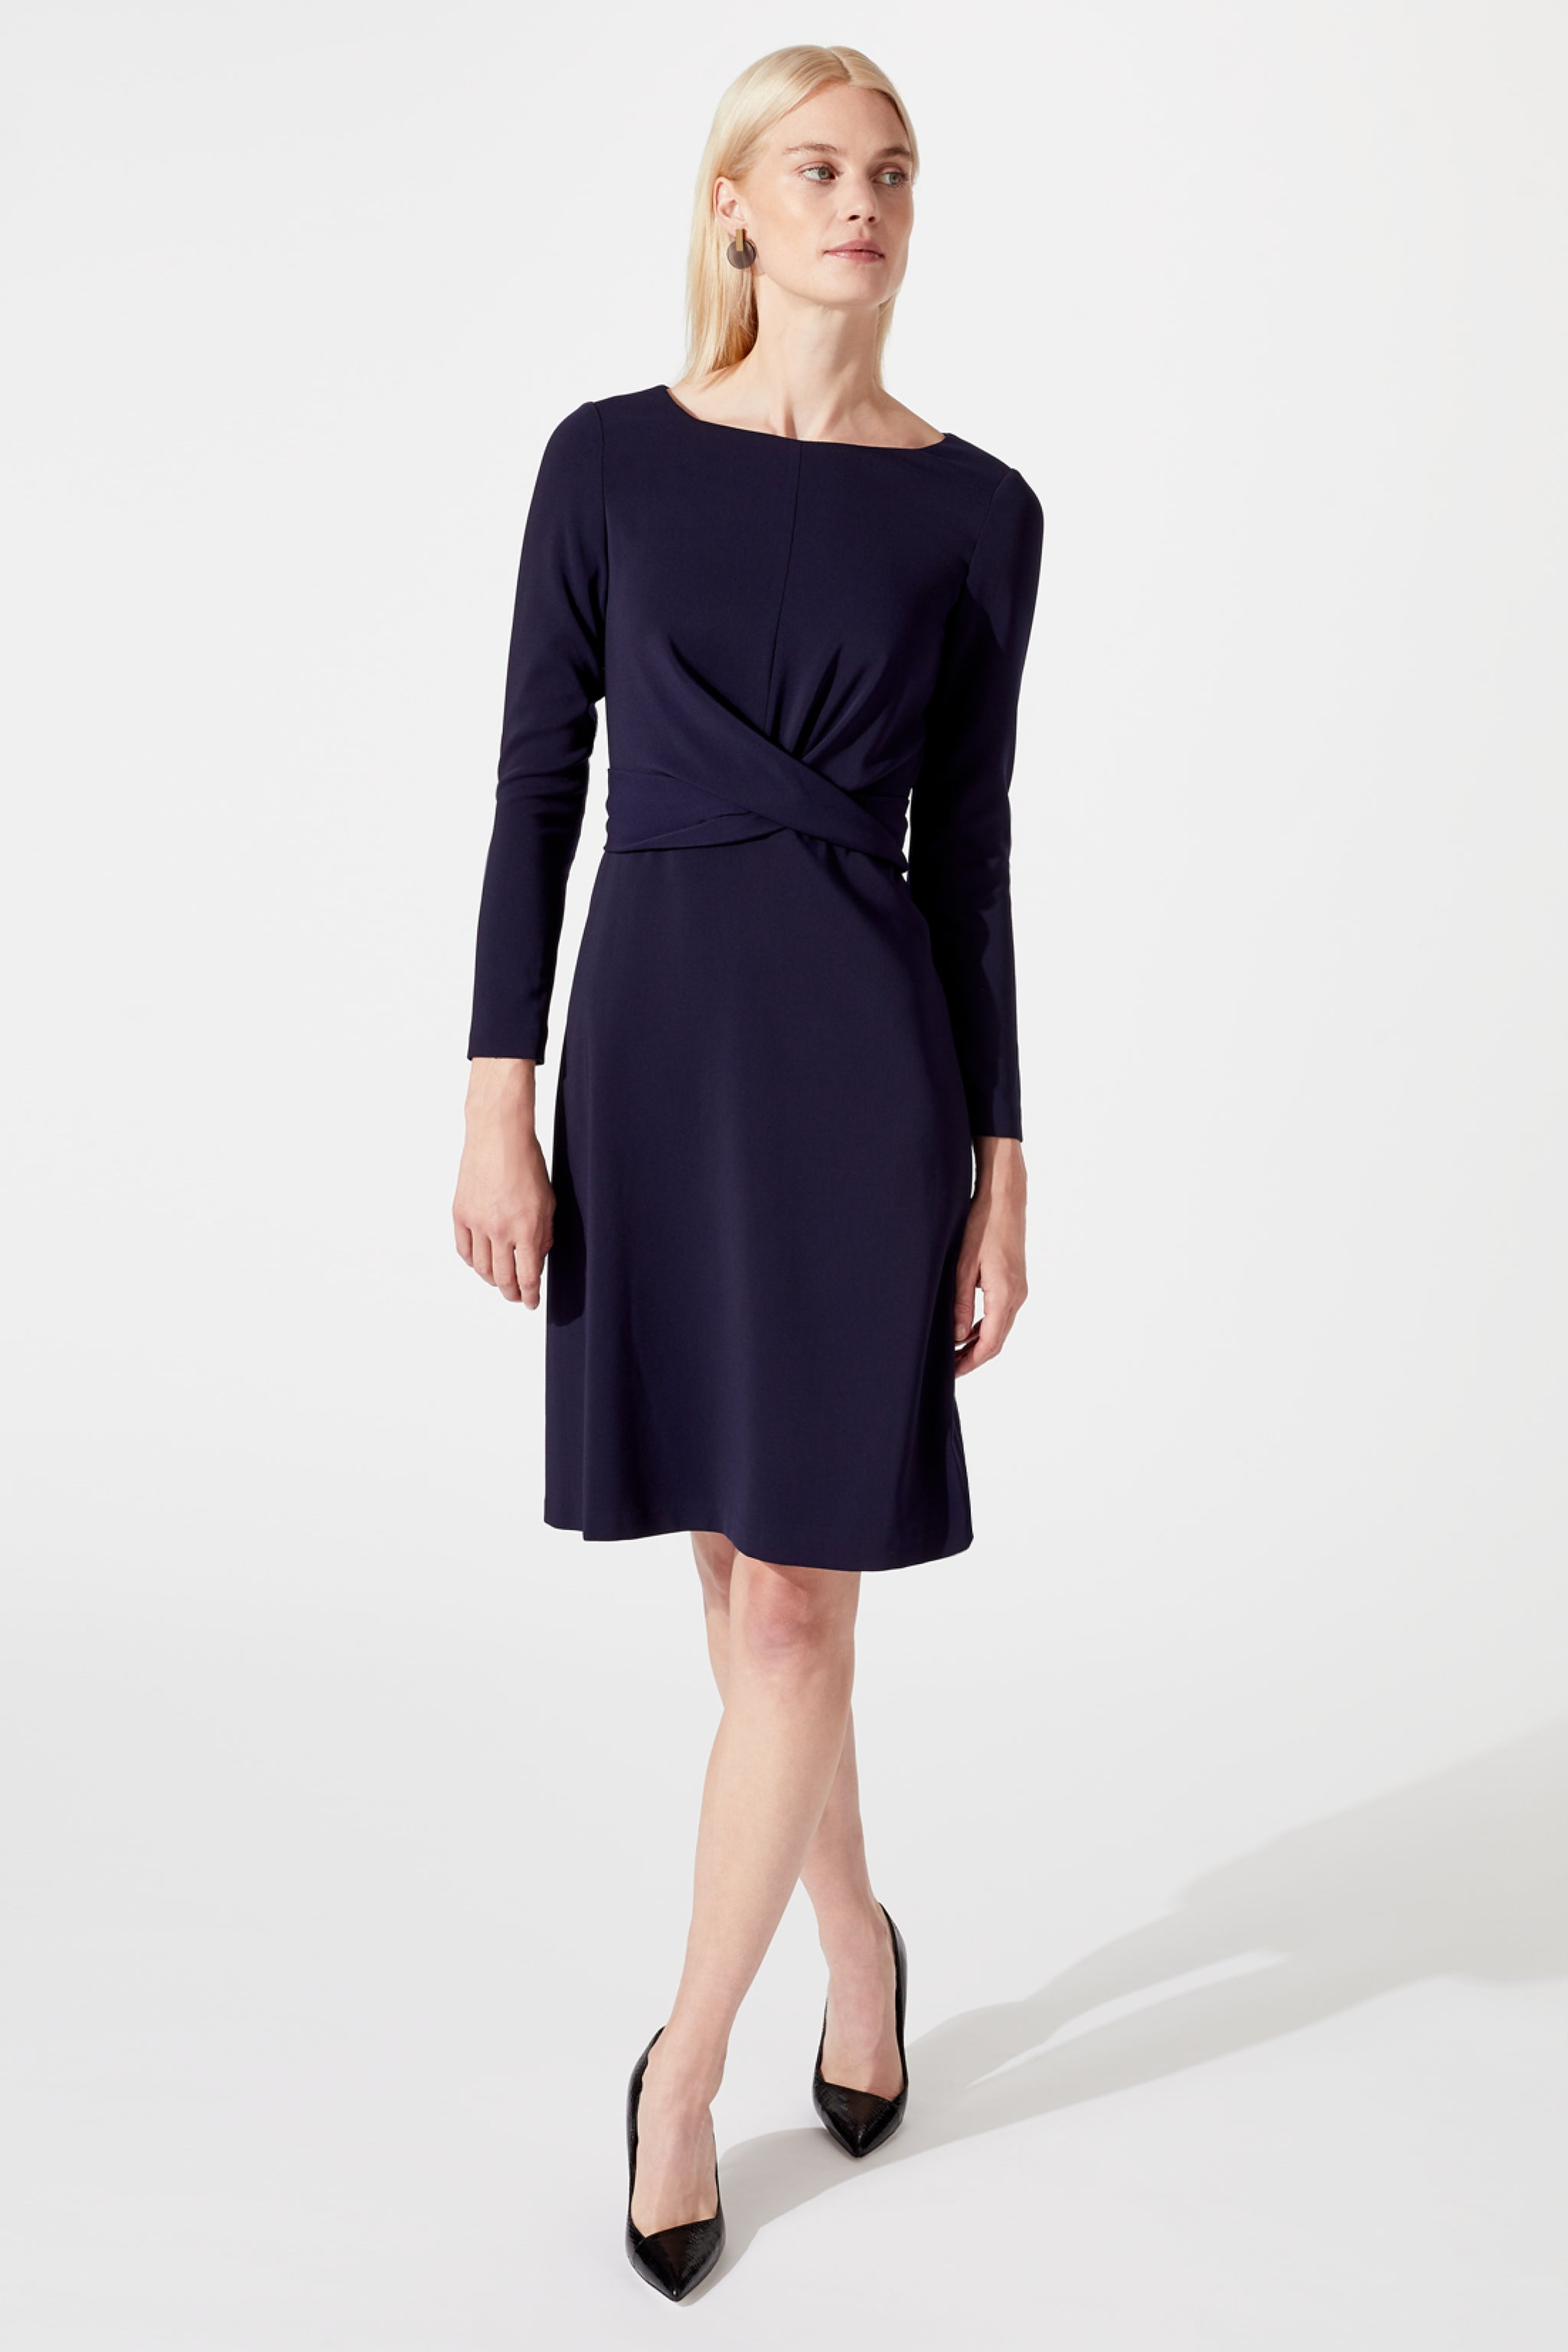 Charlton Navy Dress